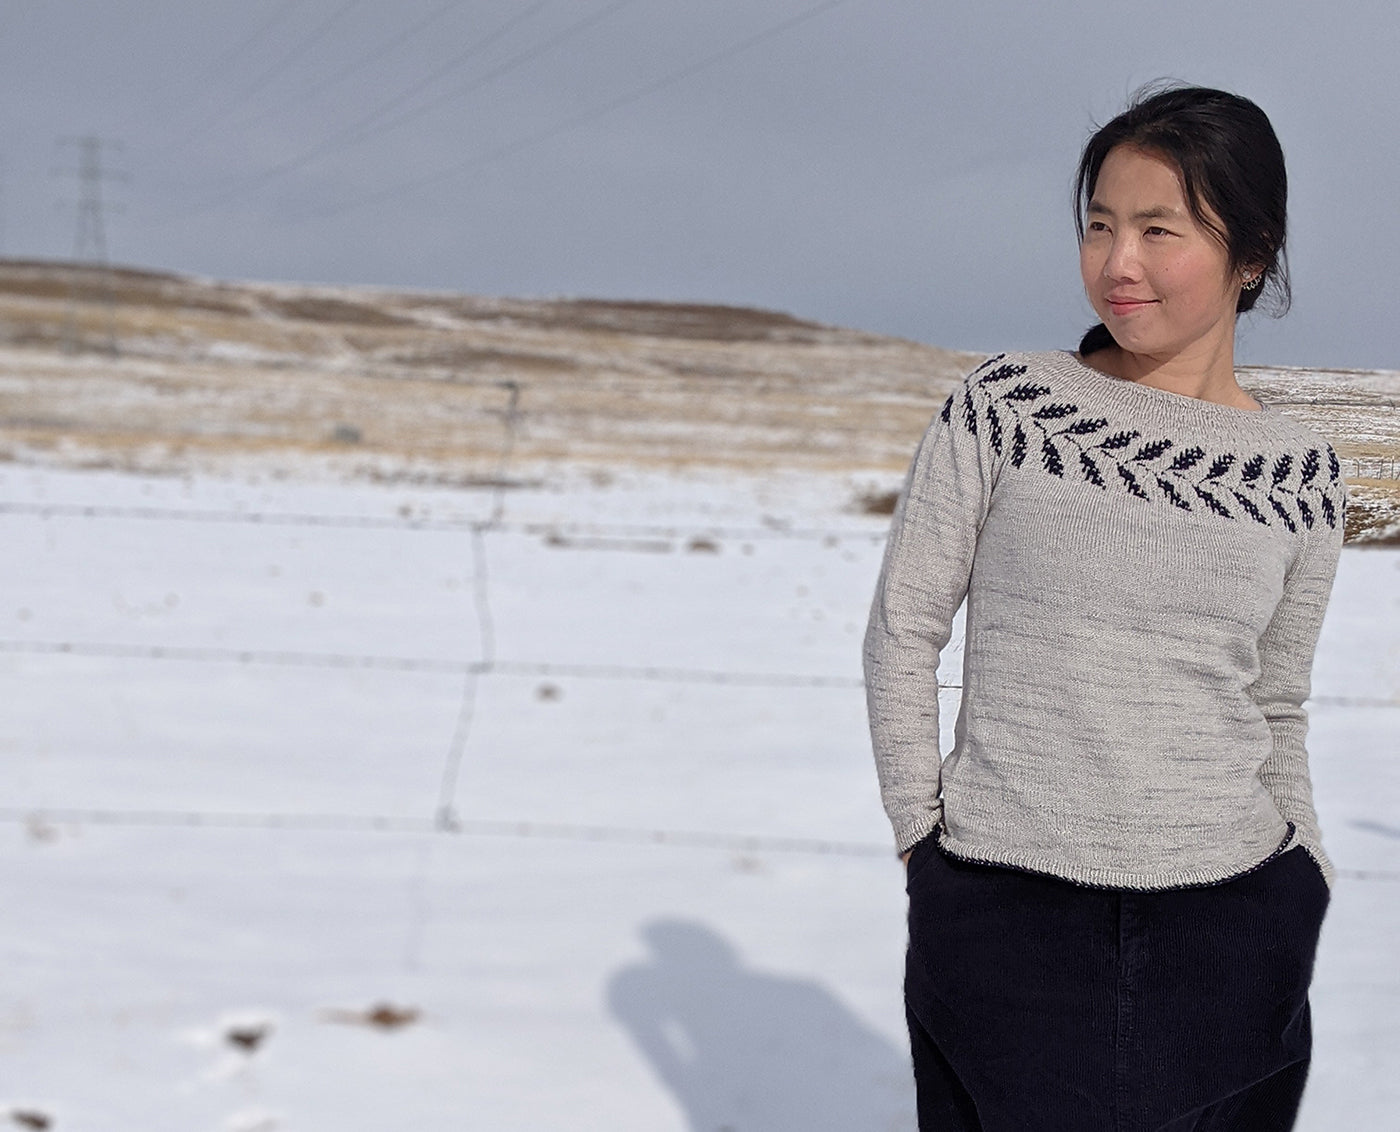 Woman standing in a snowy field wearing a hand knitted sweater featuring a decorative collar.